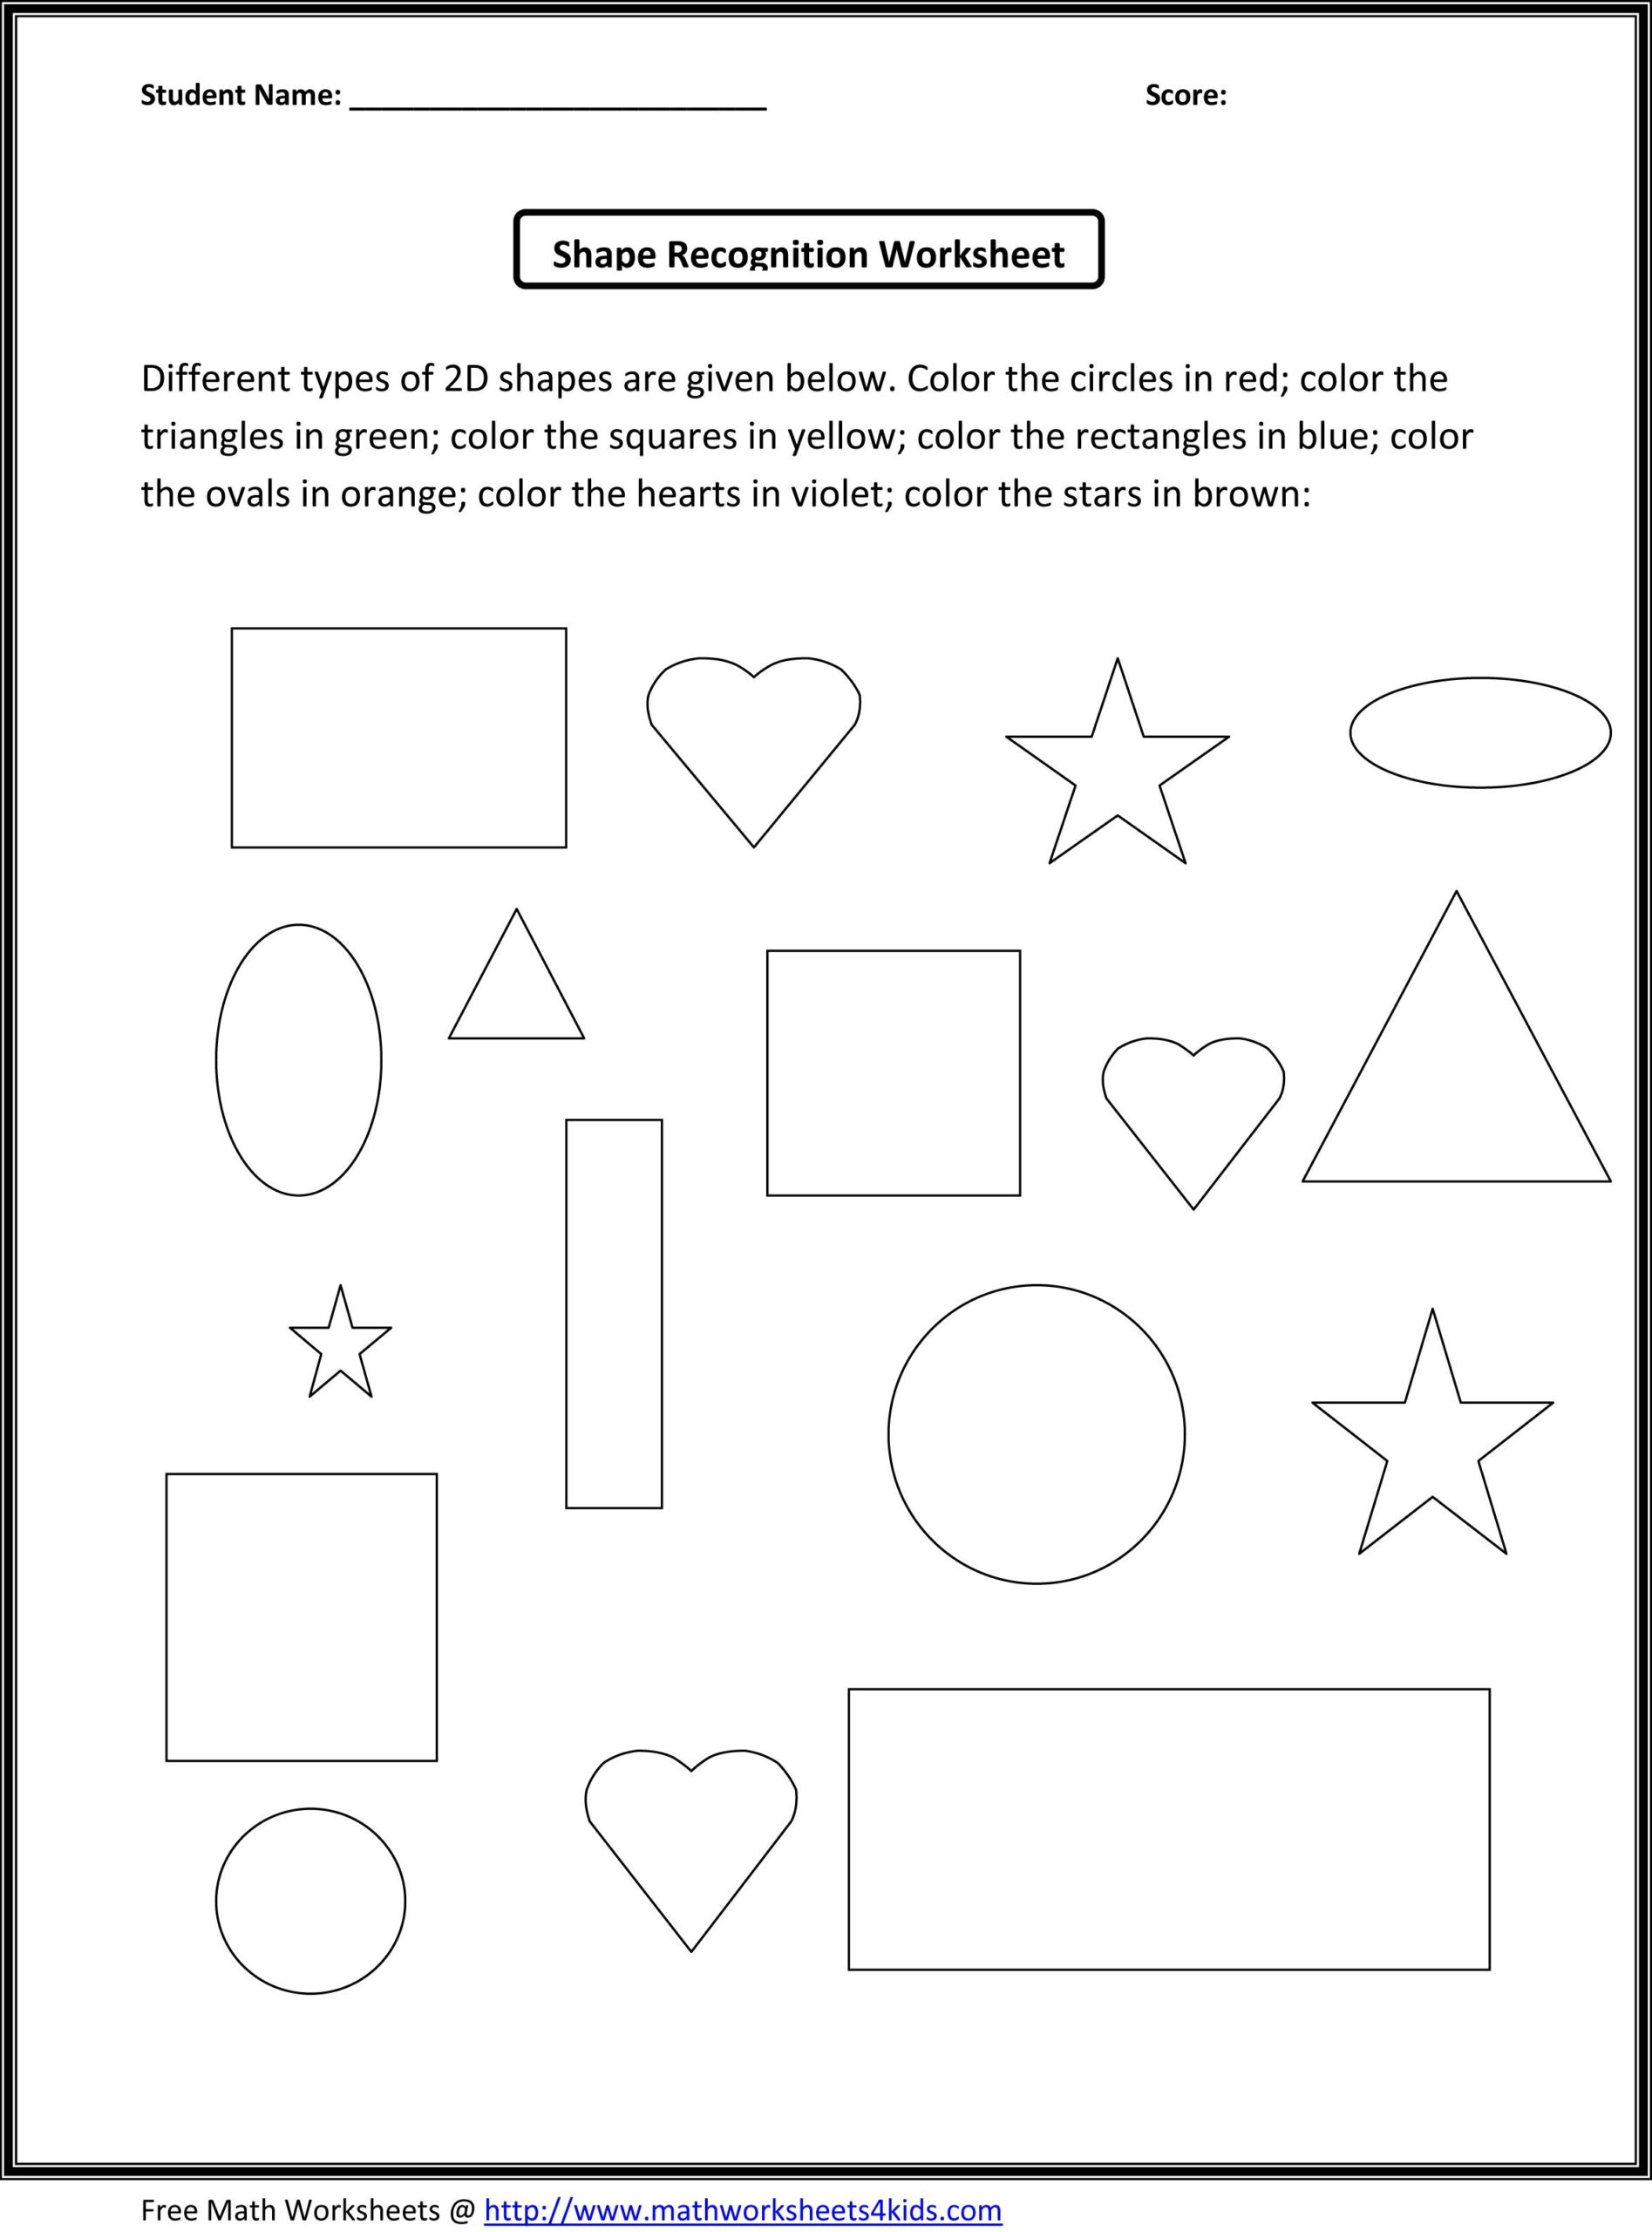 Spanish Kindergarten Worksheets Spanish Worksheets for Preschool Worksheet Free Printable